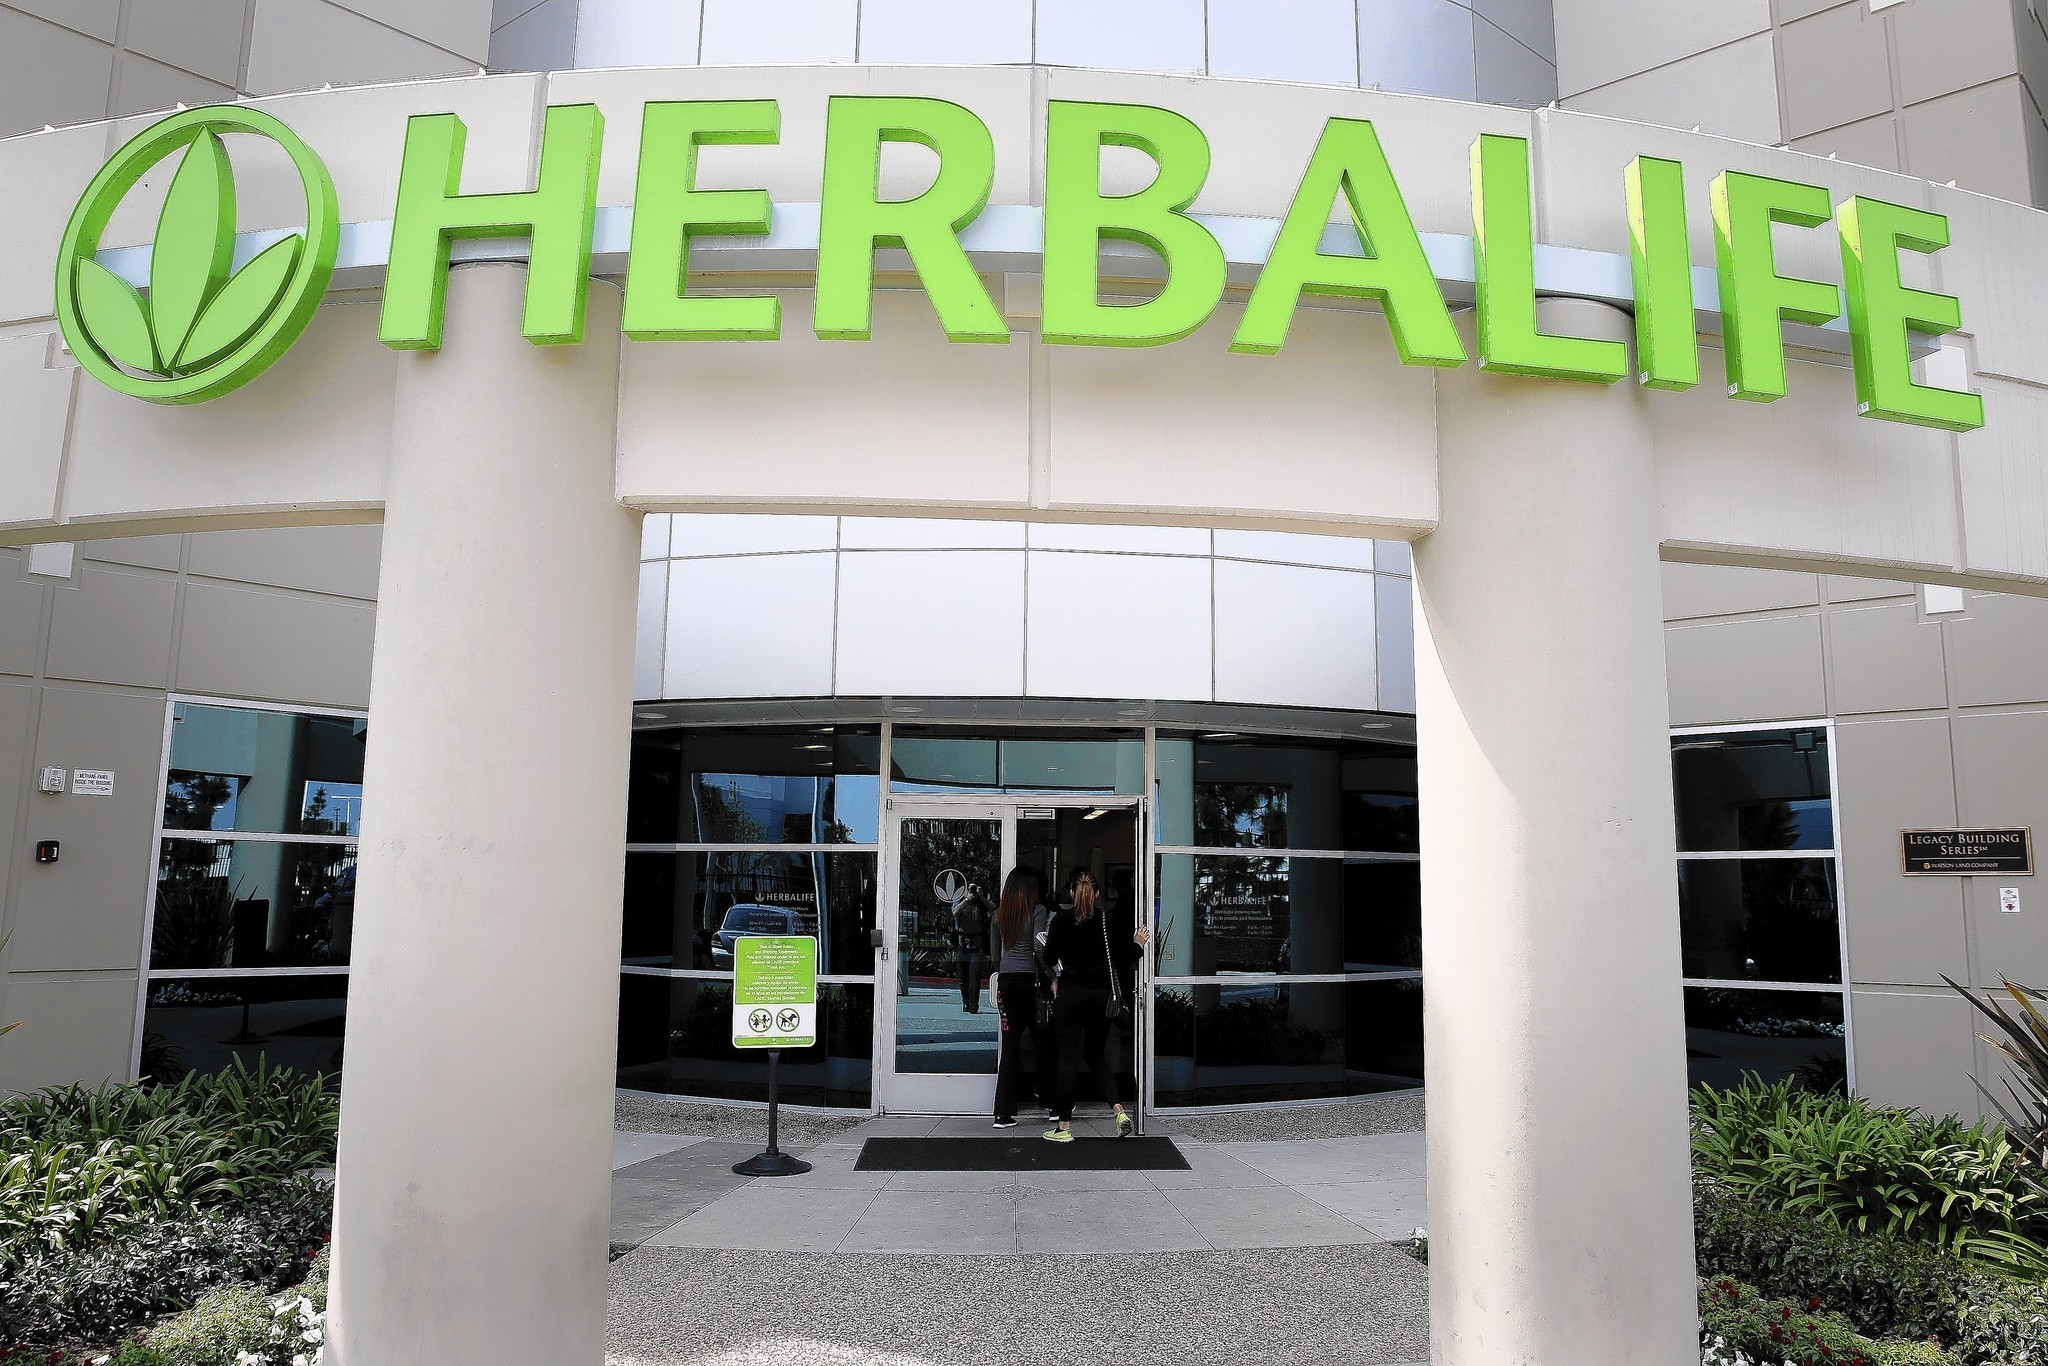 Herbalife agrees to pay $200-million settlement and change its business practices